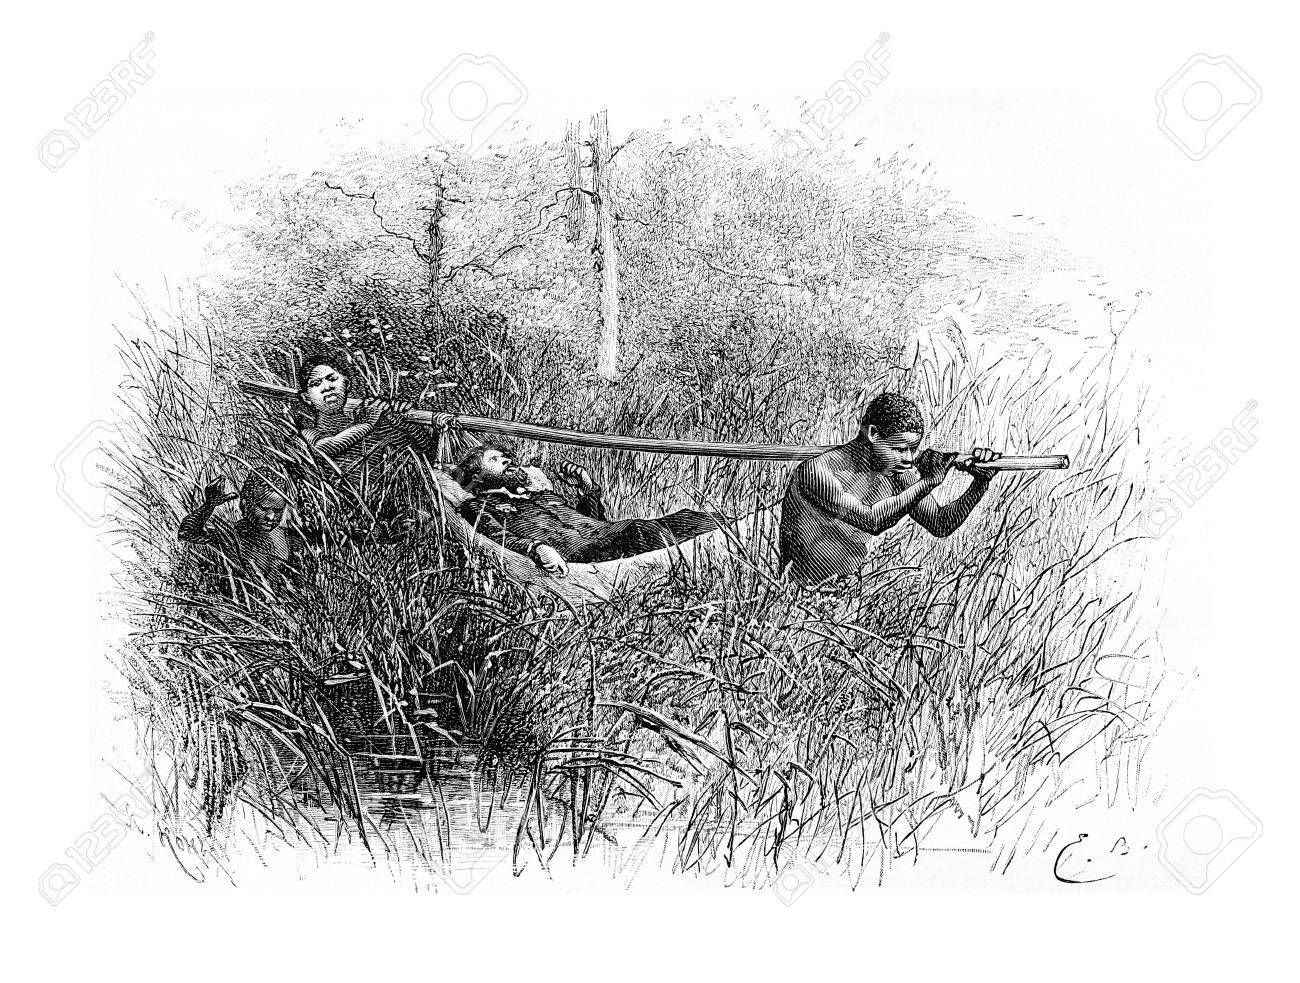 In the Swamp, in Angola, Southern Africa, drawing by Bayard based on a sketch by Serpa Pinto, vintage engraved illustration. Le Tour du Monde, Travel Journal, 1881 - 38440863